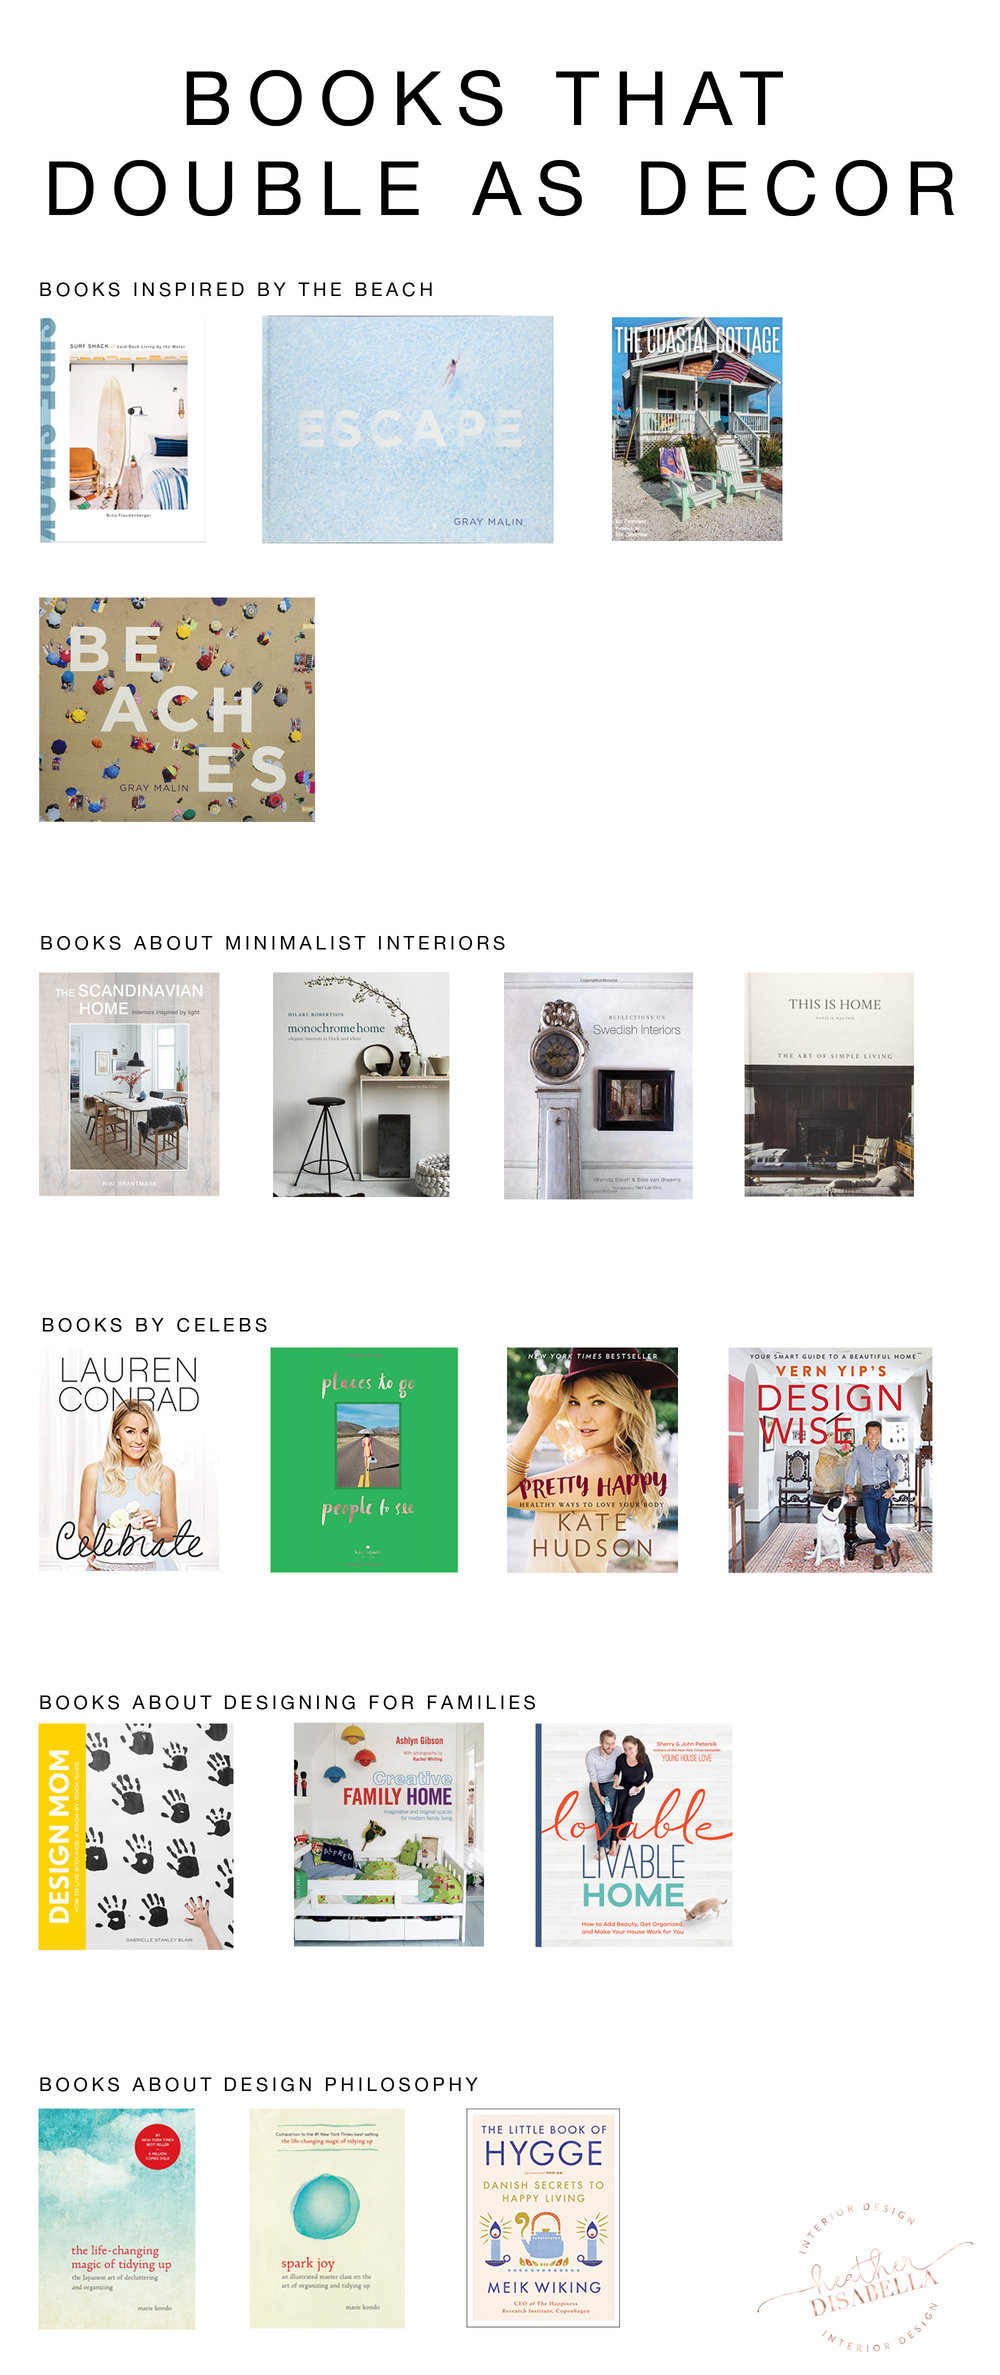 Design Books that Double as Decor